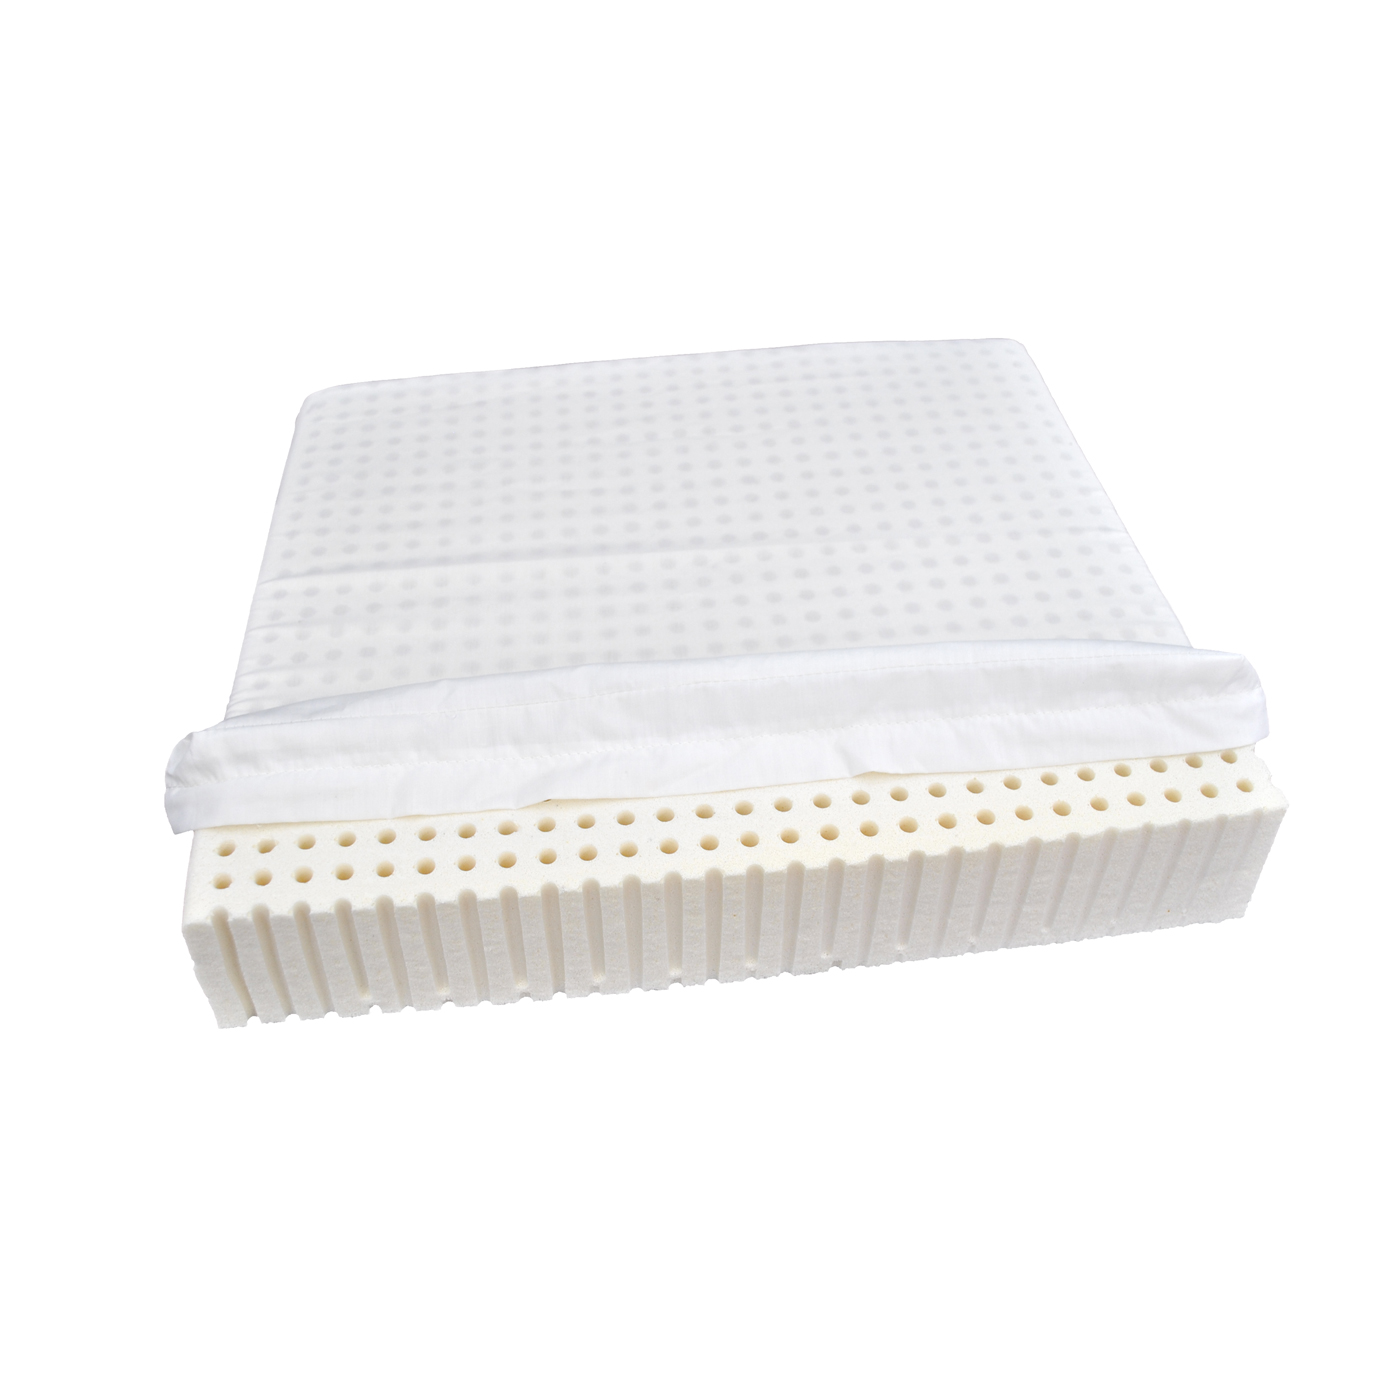 highest quality latex seat cushion